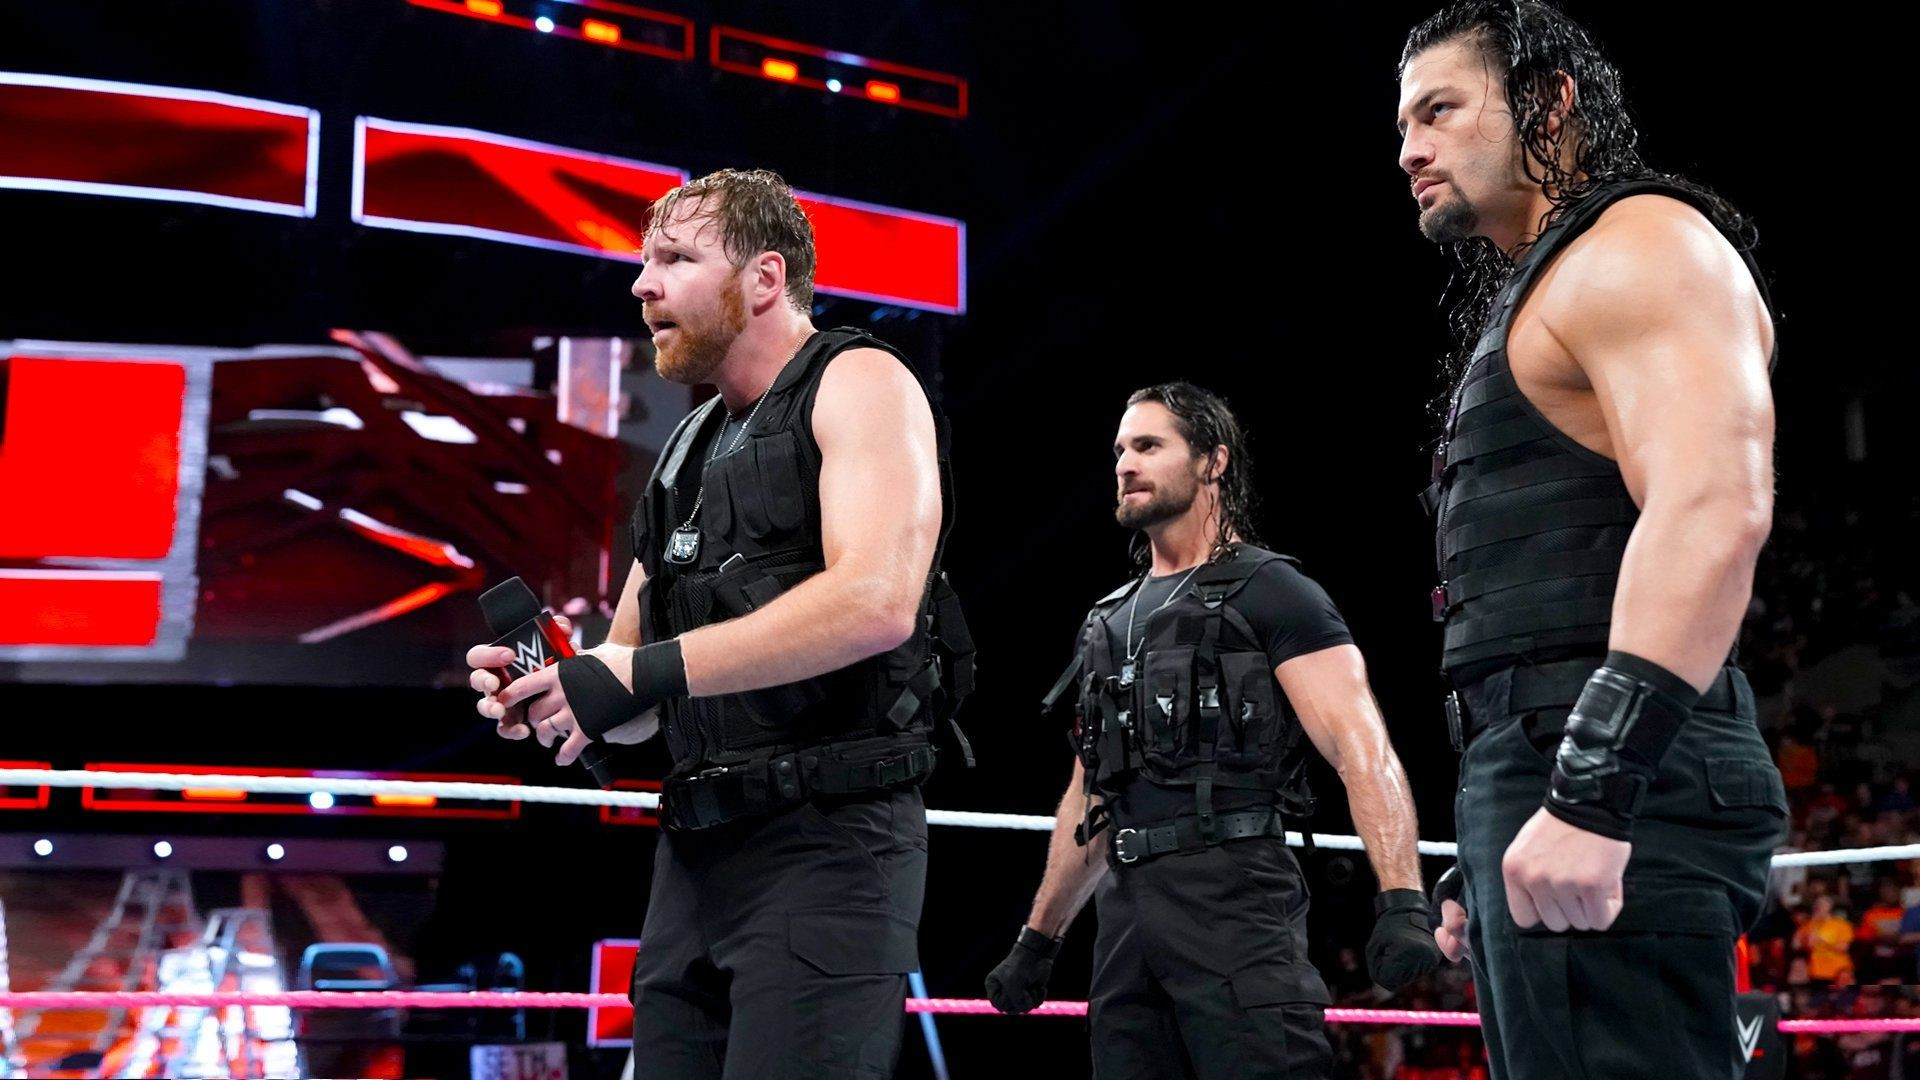 The shield, cool wwe wallpapers